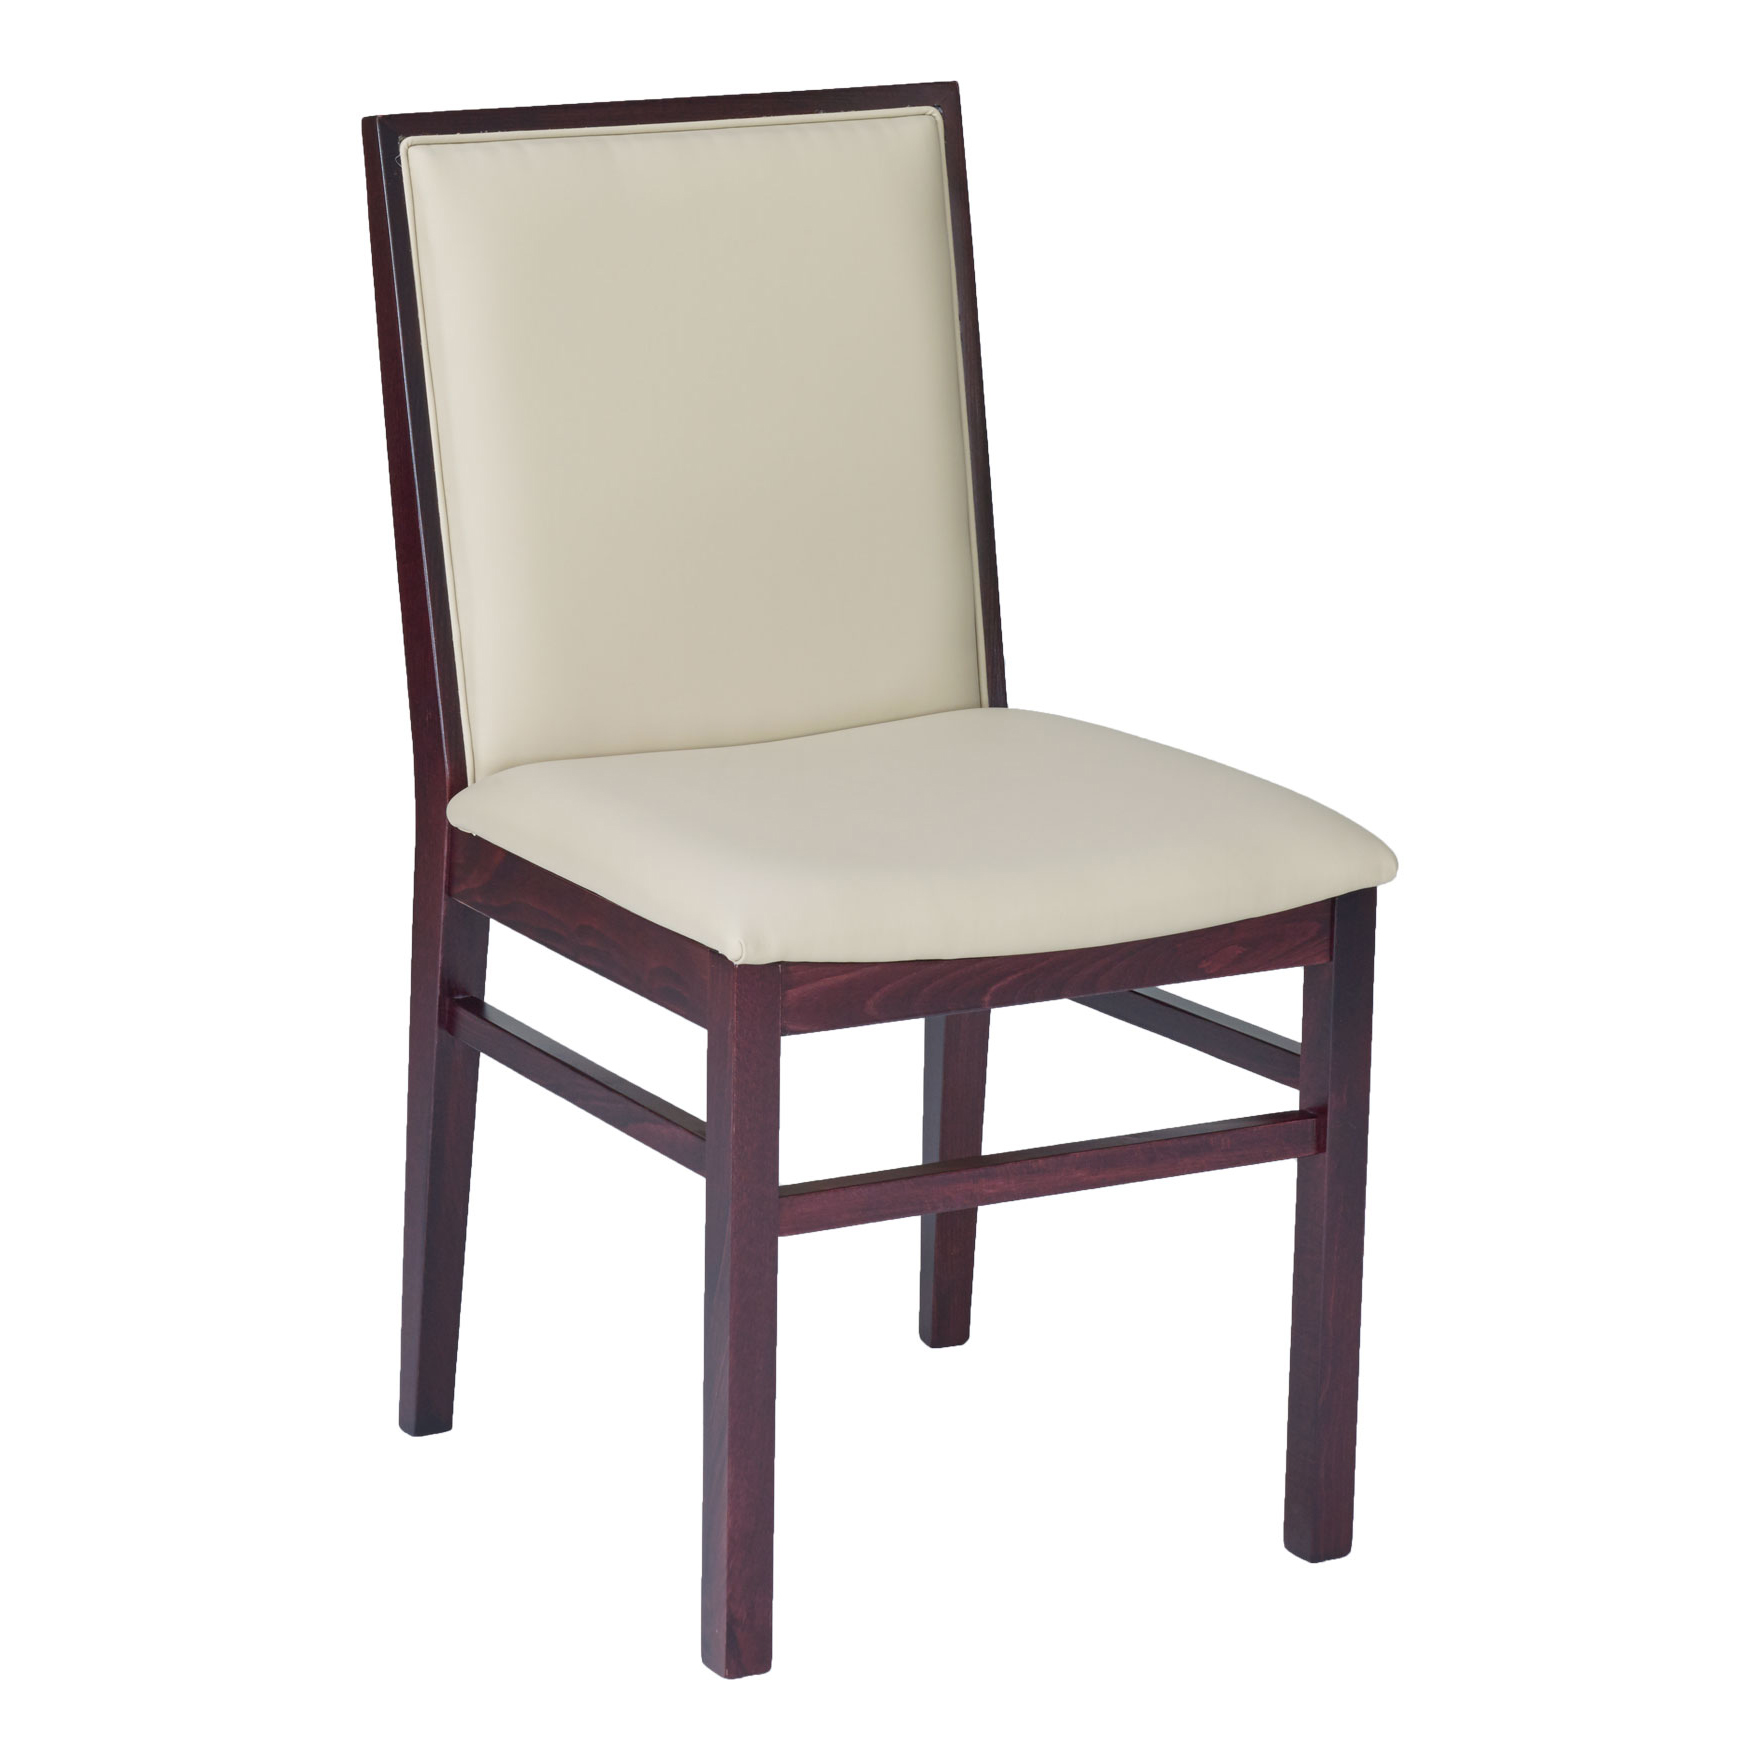 Florida Seating RV-MONTERO S GR3 chair, side, indoor